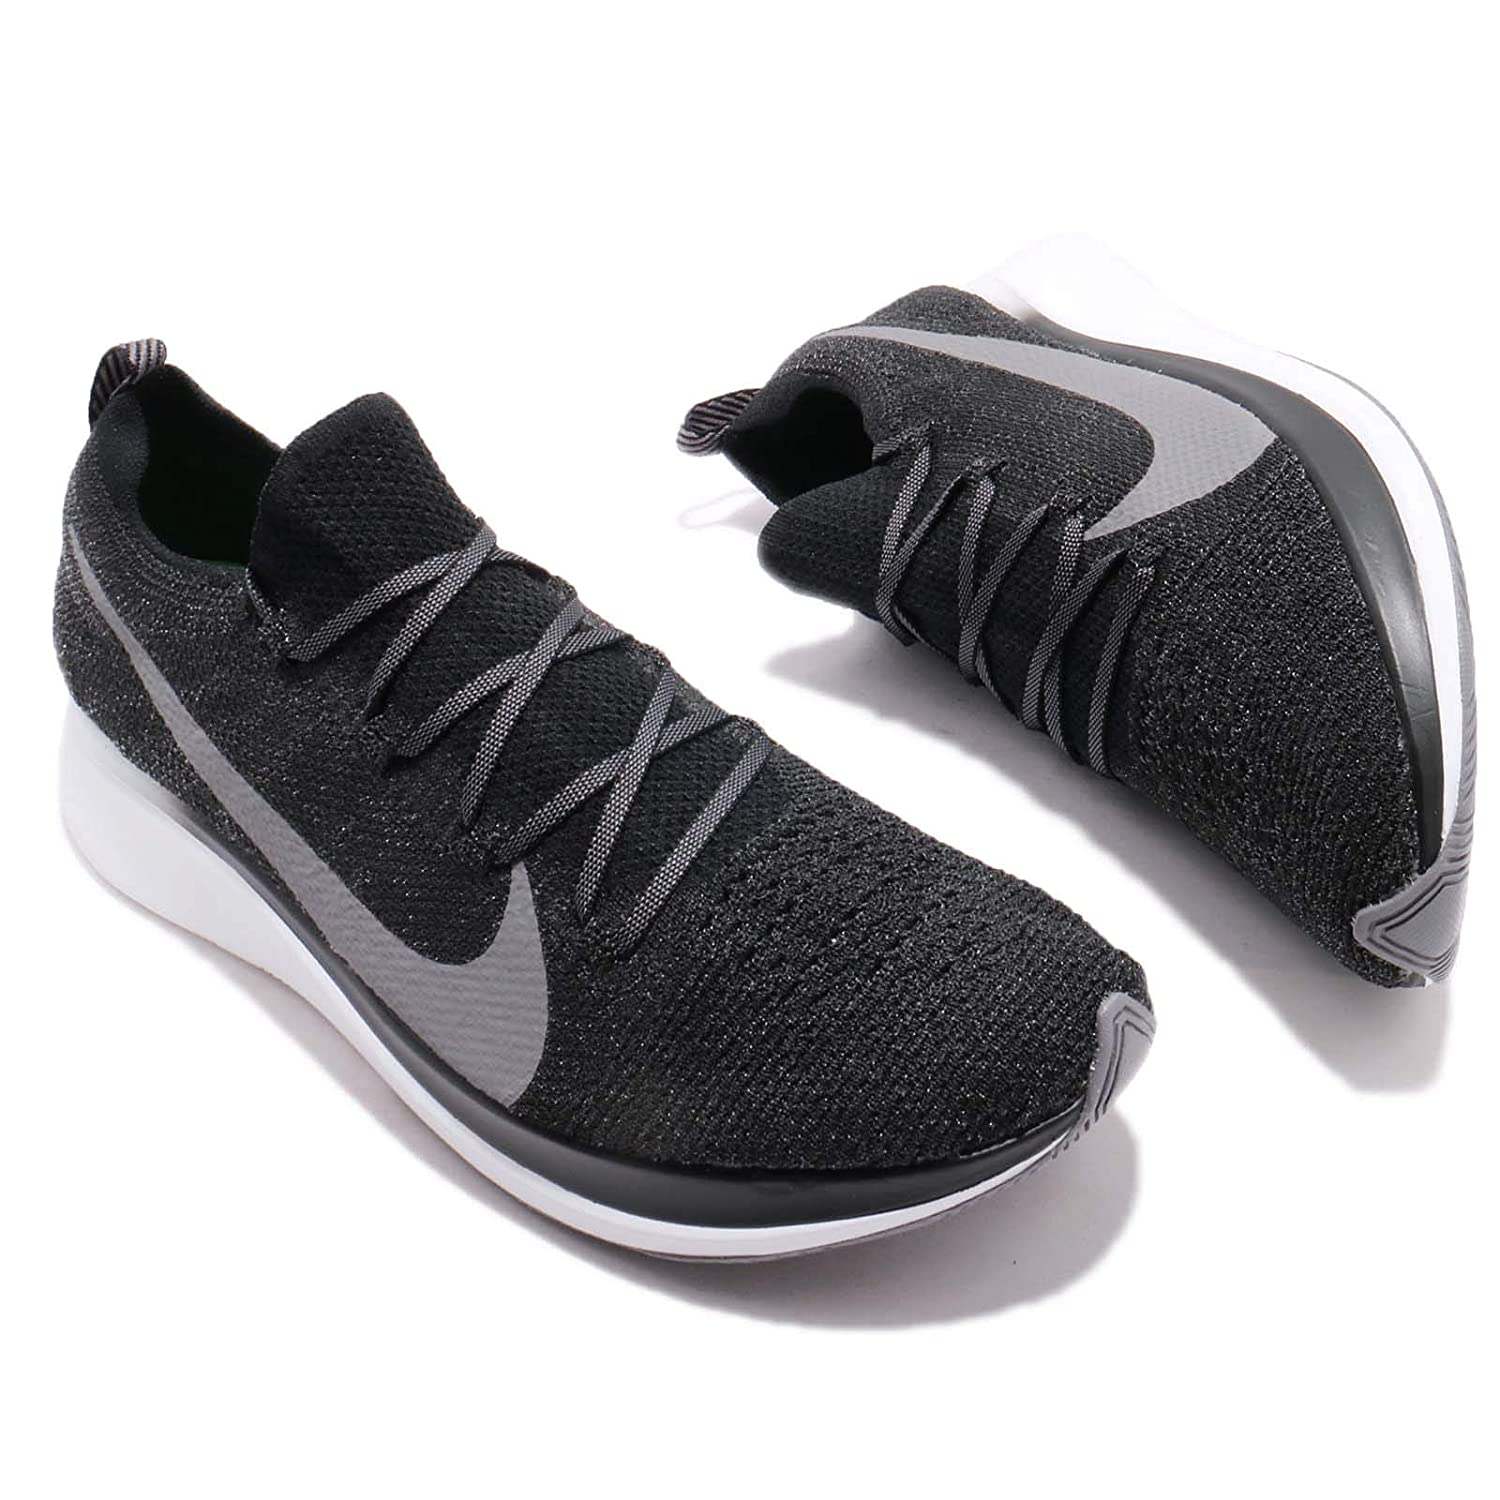 Nike Zoom Fly Flyknit, Zapatillas de Running para Hombre, (Black/Gunsmoke/White 001), 40 EU: Amazon.es: Zapatos y complementos